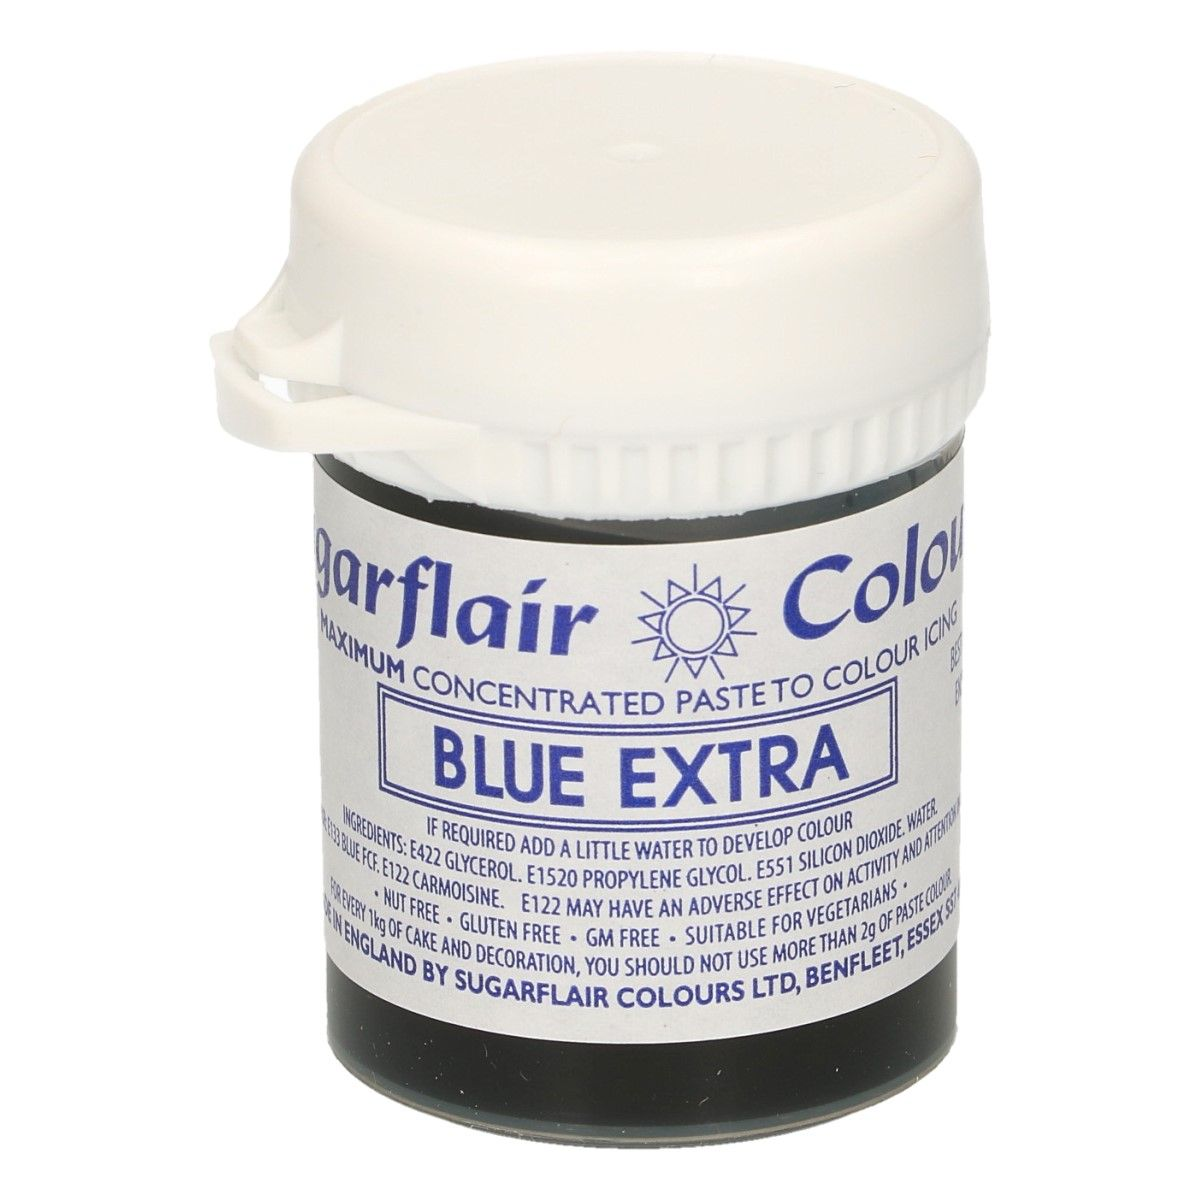 Colorant alimentaire en gel 42 g – Bleu Extra